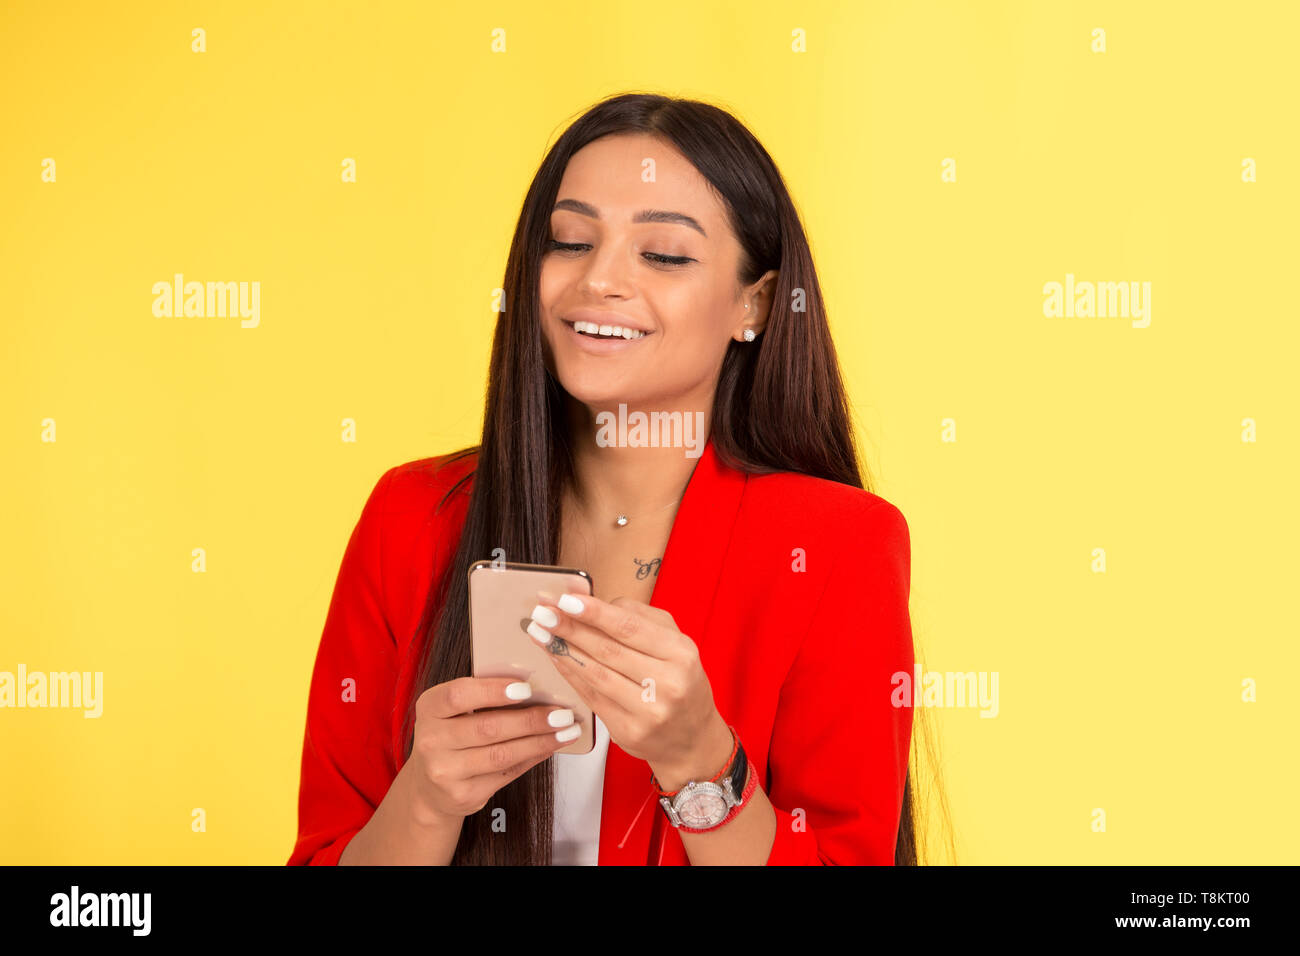 Joyful pretty African American female laughs at funny joke, surfing internet on mobile phone, reads good news, connected to wireless internet isolated - Stock Image